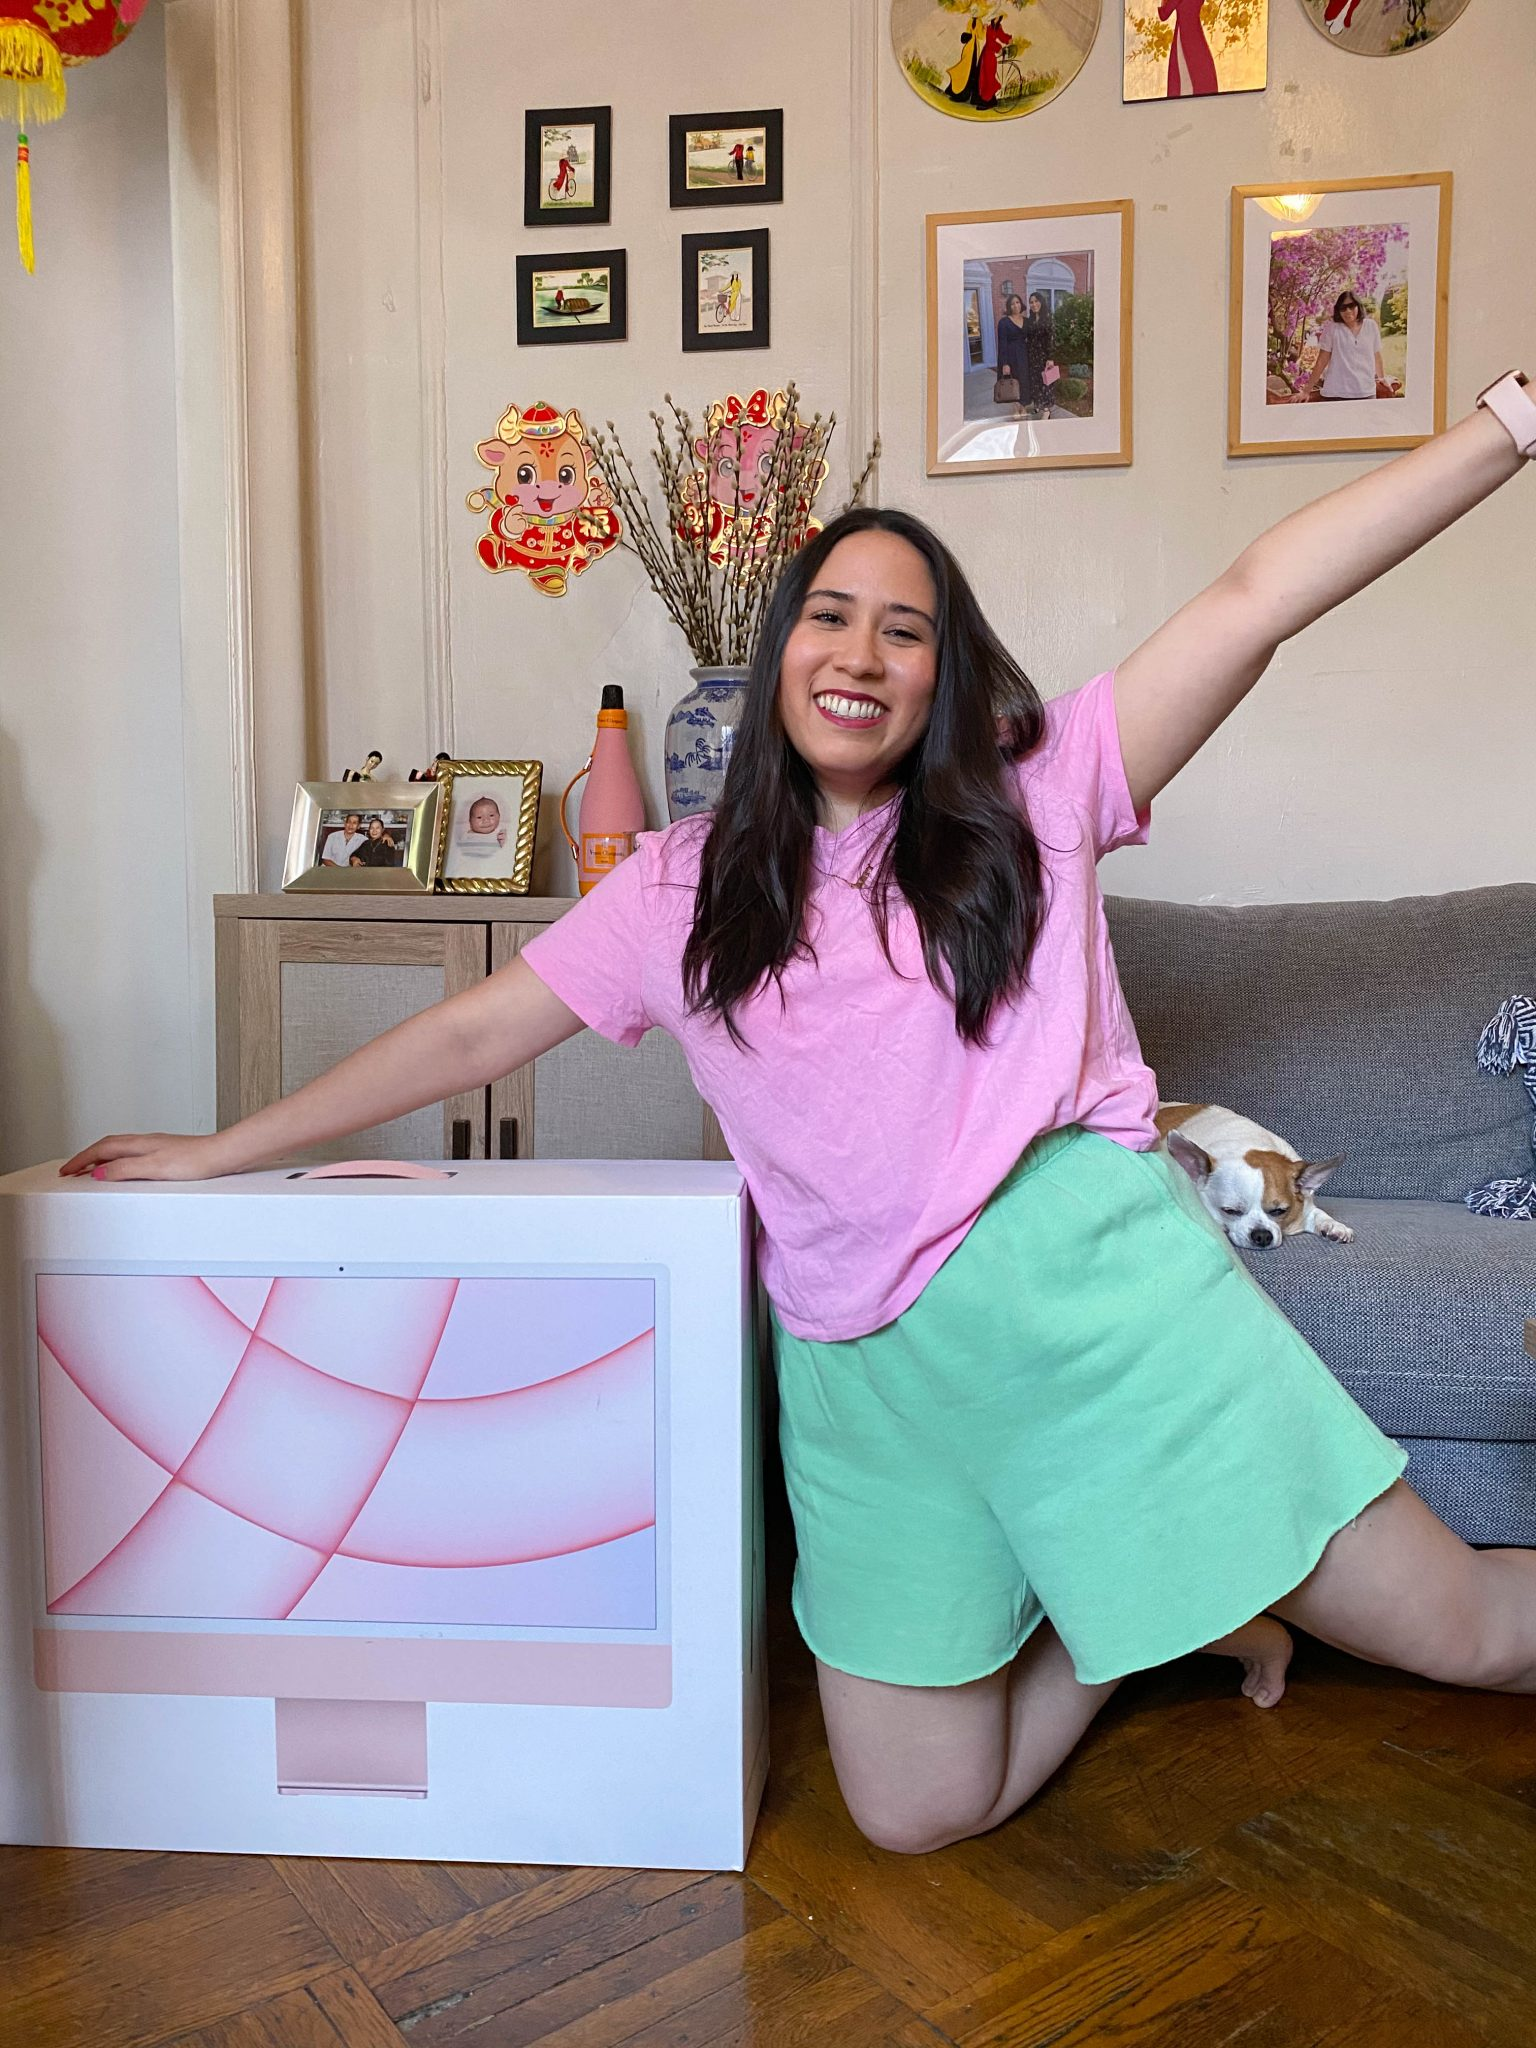 Life Lately July 2021 by Basically A Mess (photo of a woman with a pink M1 iMac)